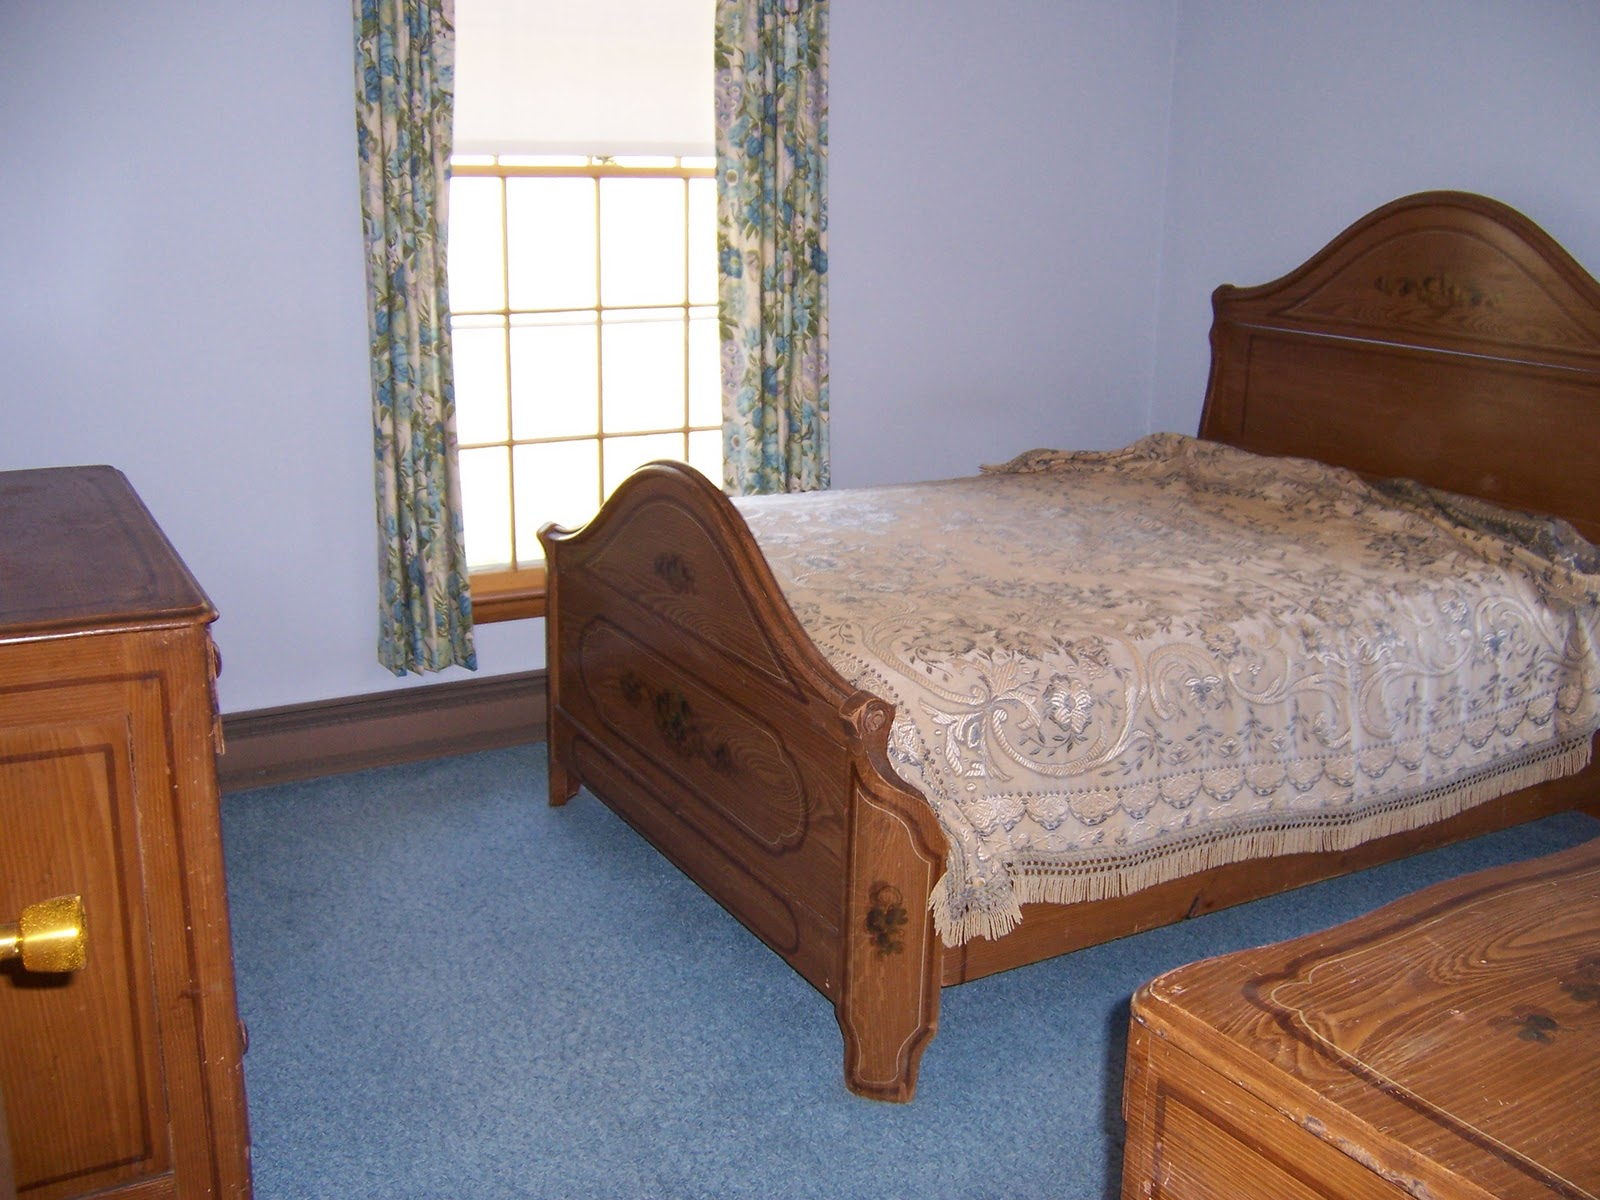 Bedroom 3 is a 10x12 room on the corner of the house, two large